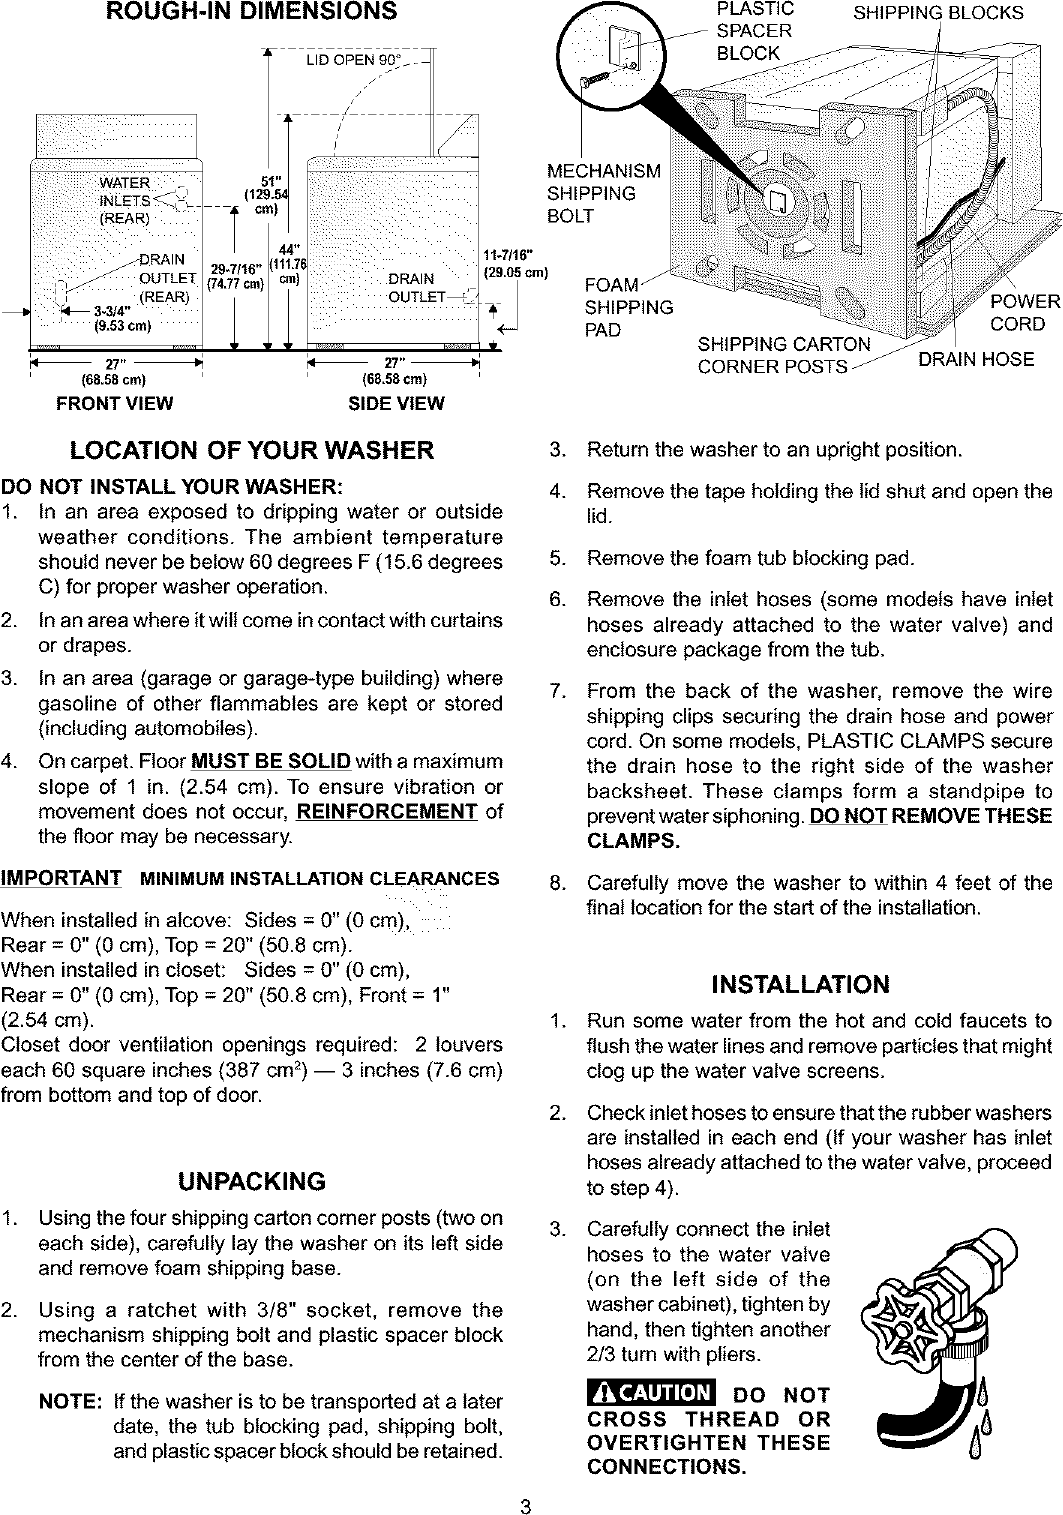 Frigidaire Fws445rfs4 User Manual Washer Manuals And Guides L0304057 Schematic Page 3 Of 4